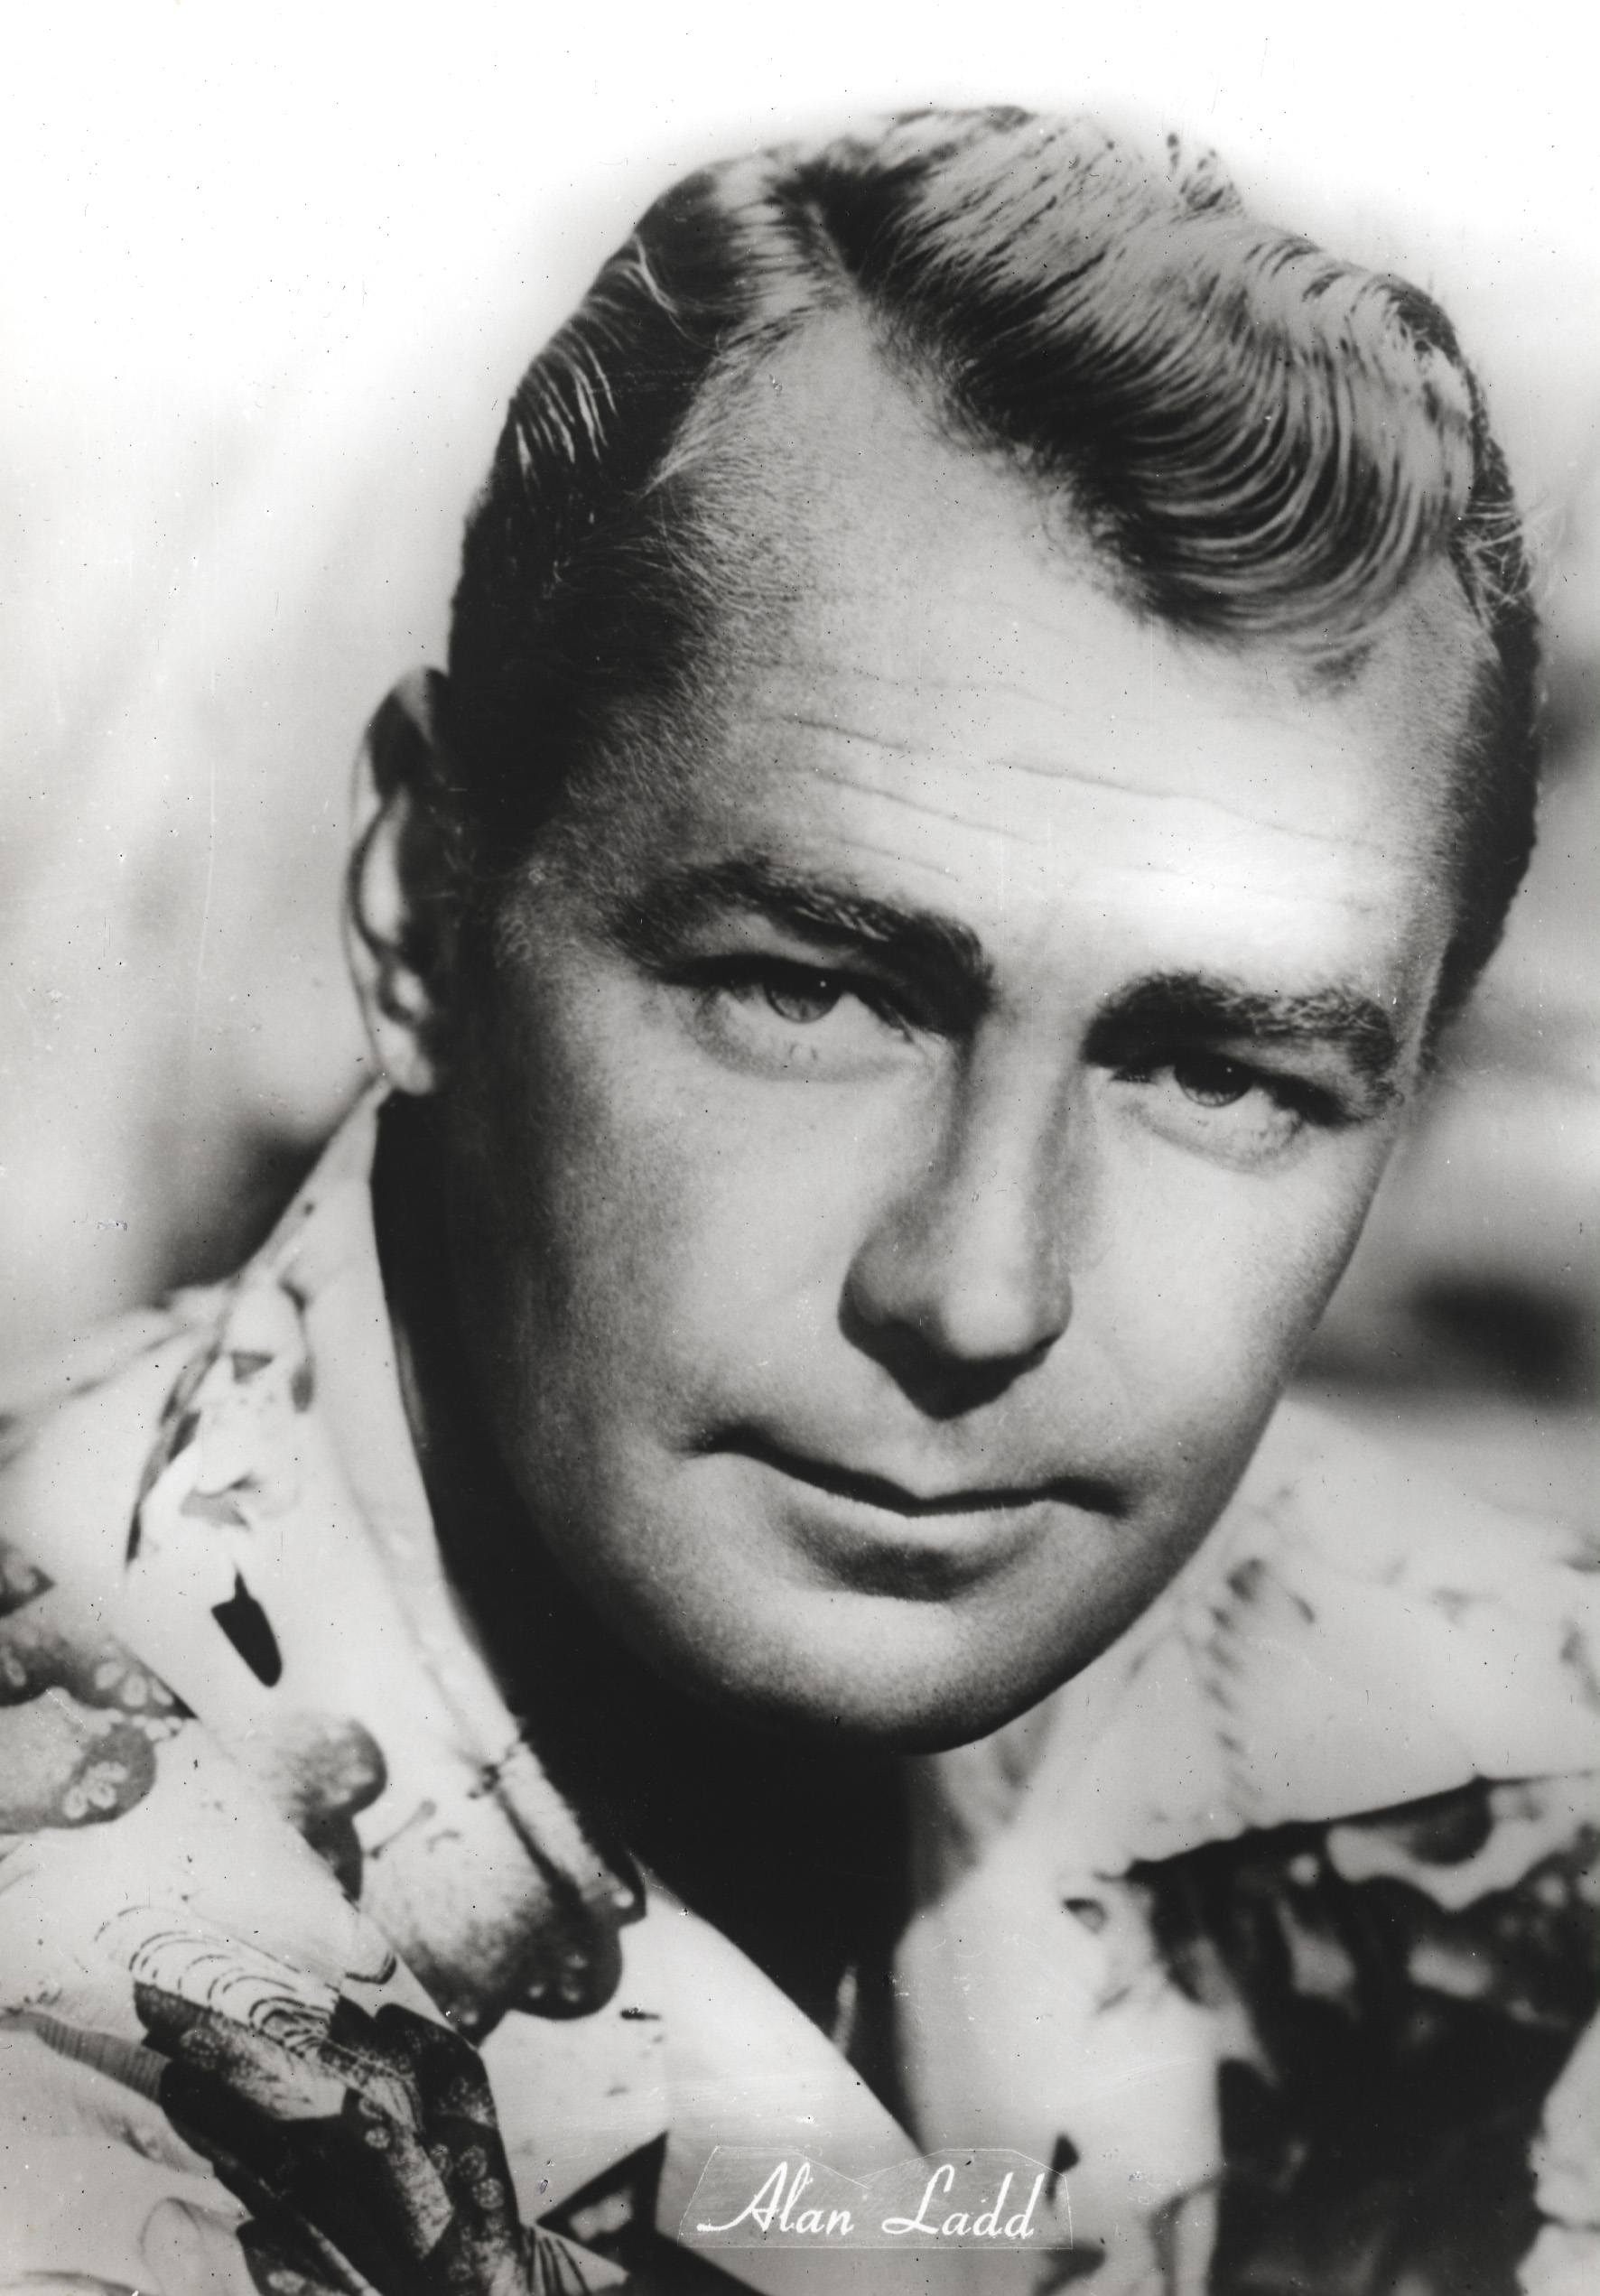 alan ladd gay